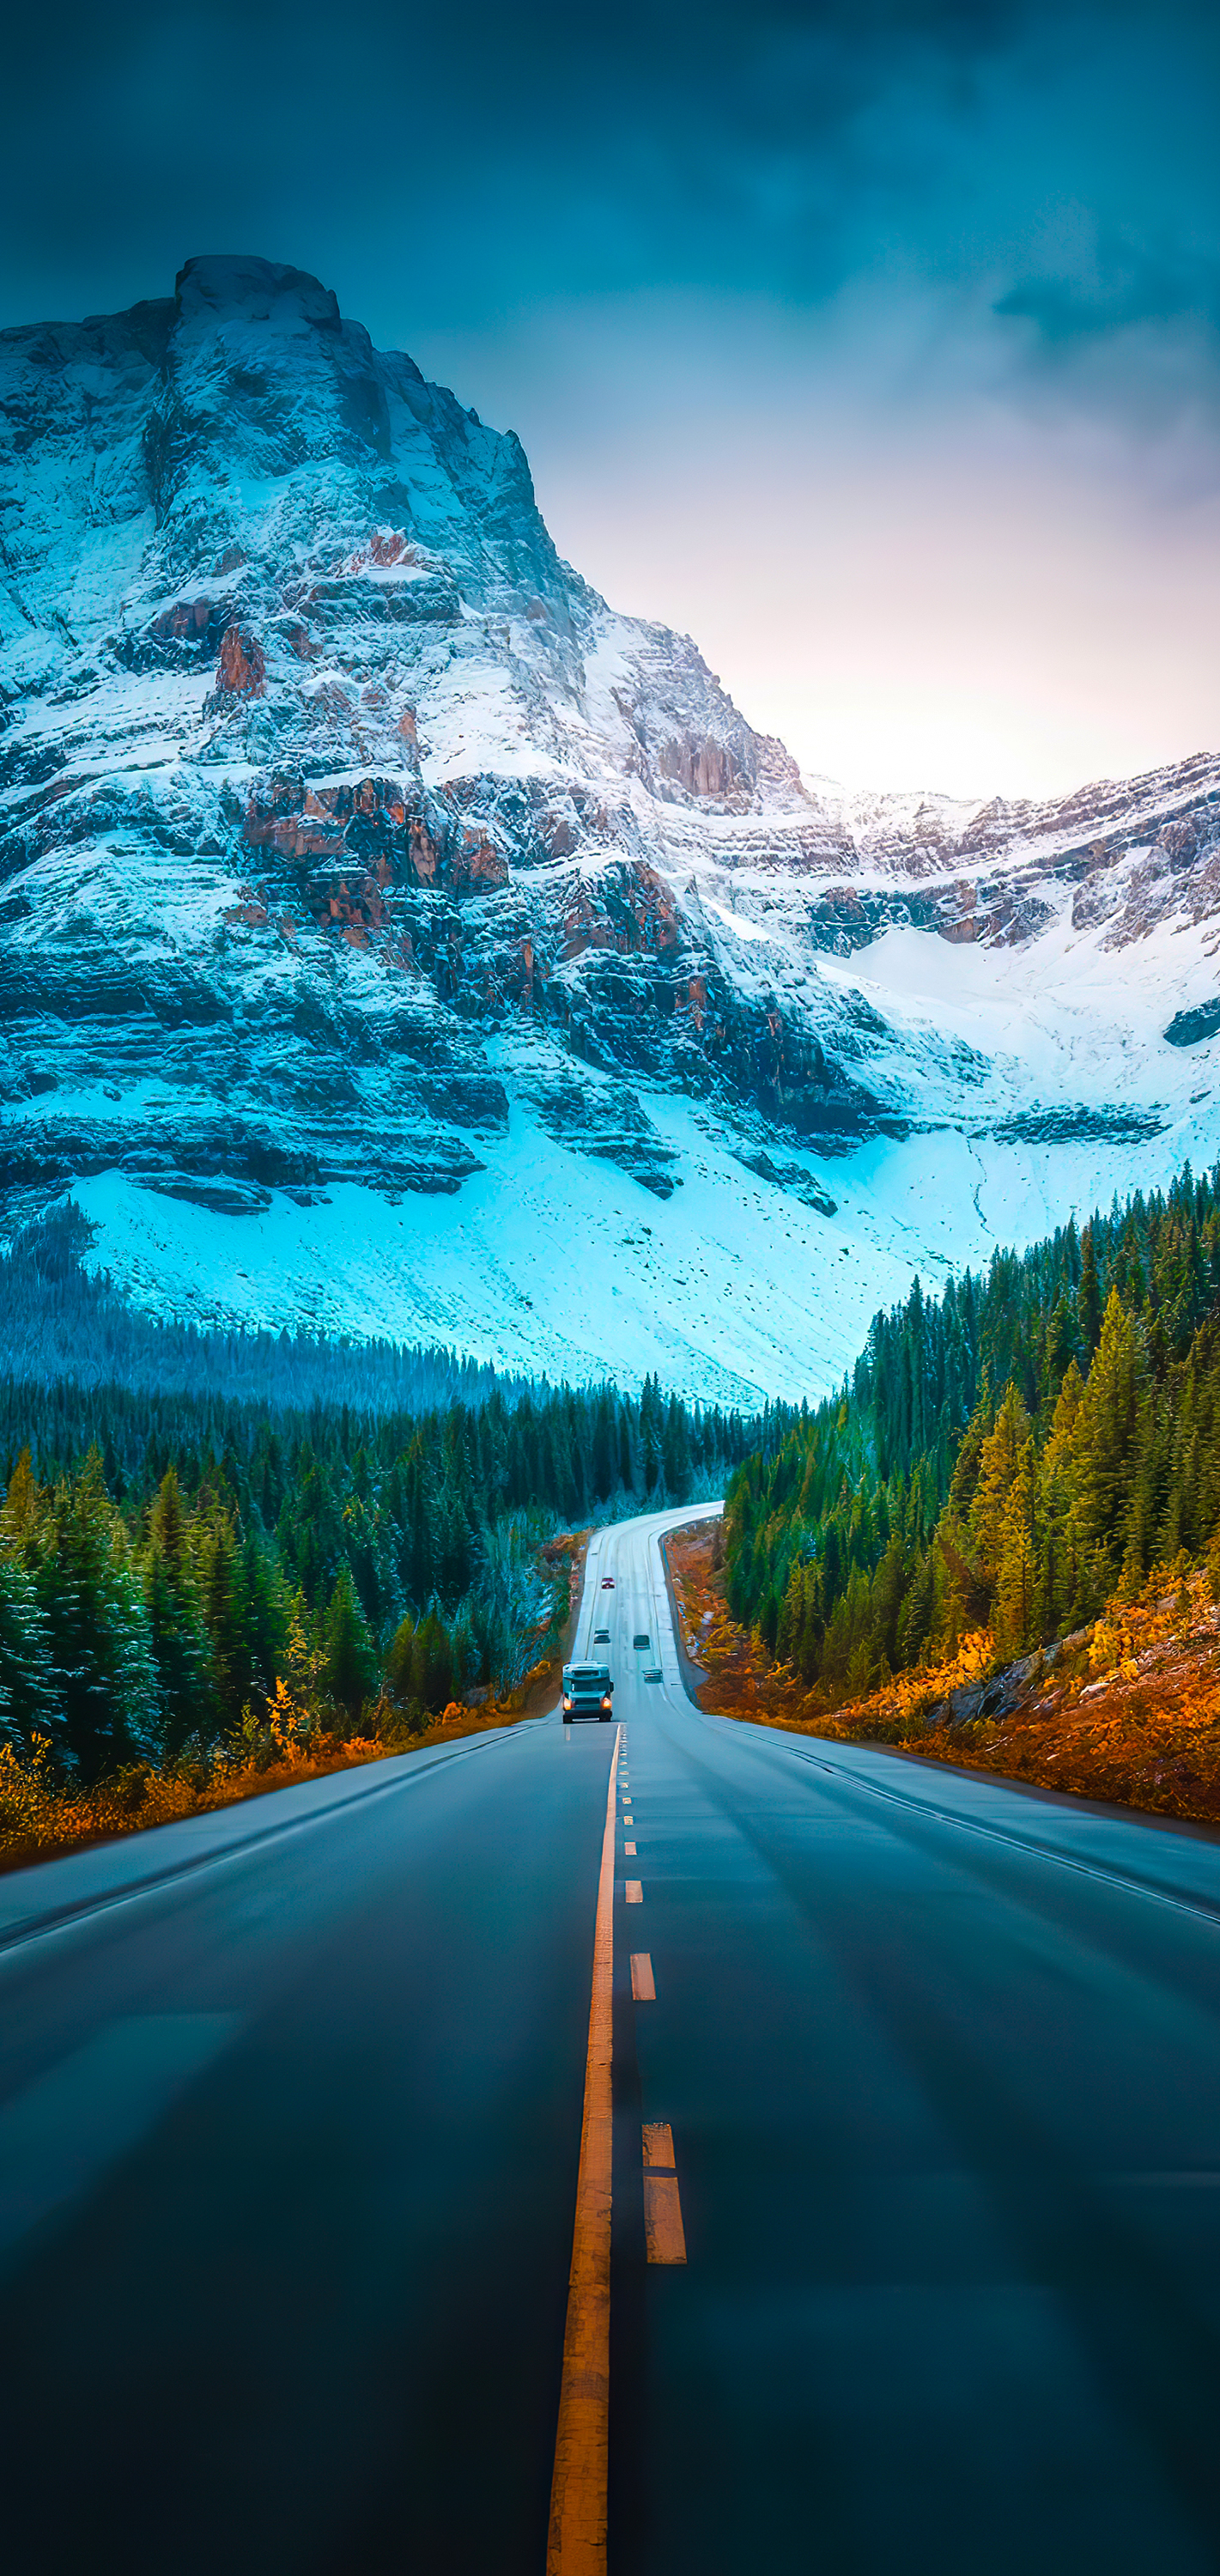 Road iPhone wallpaper ieditwalls idownloadblog zach doehler